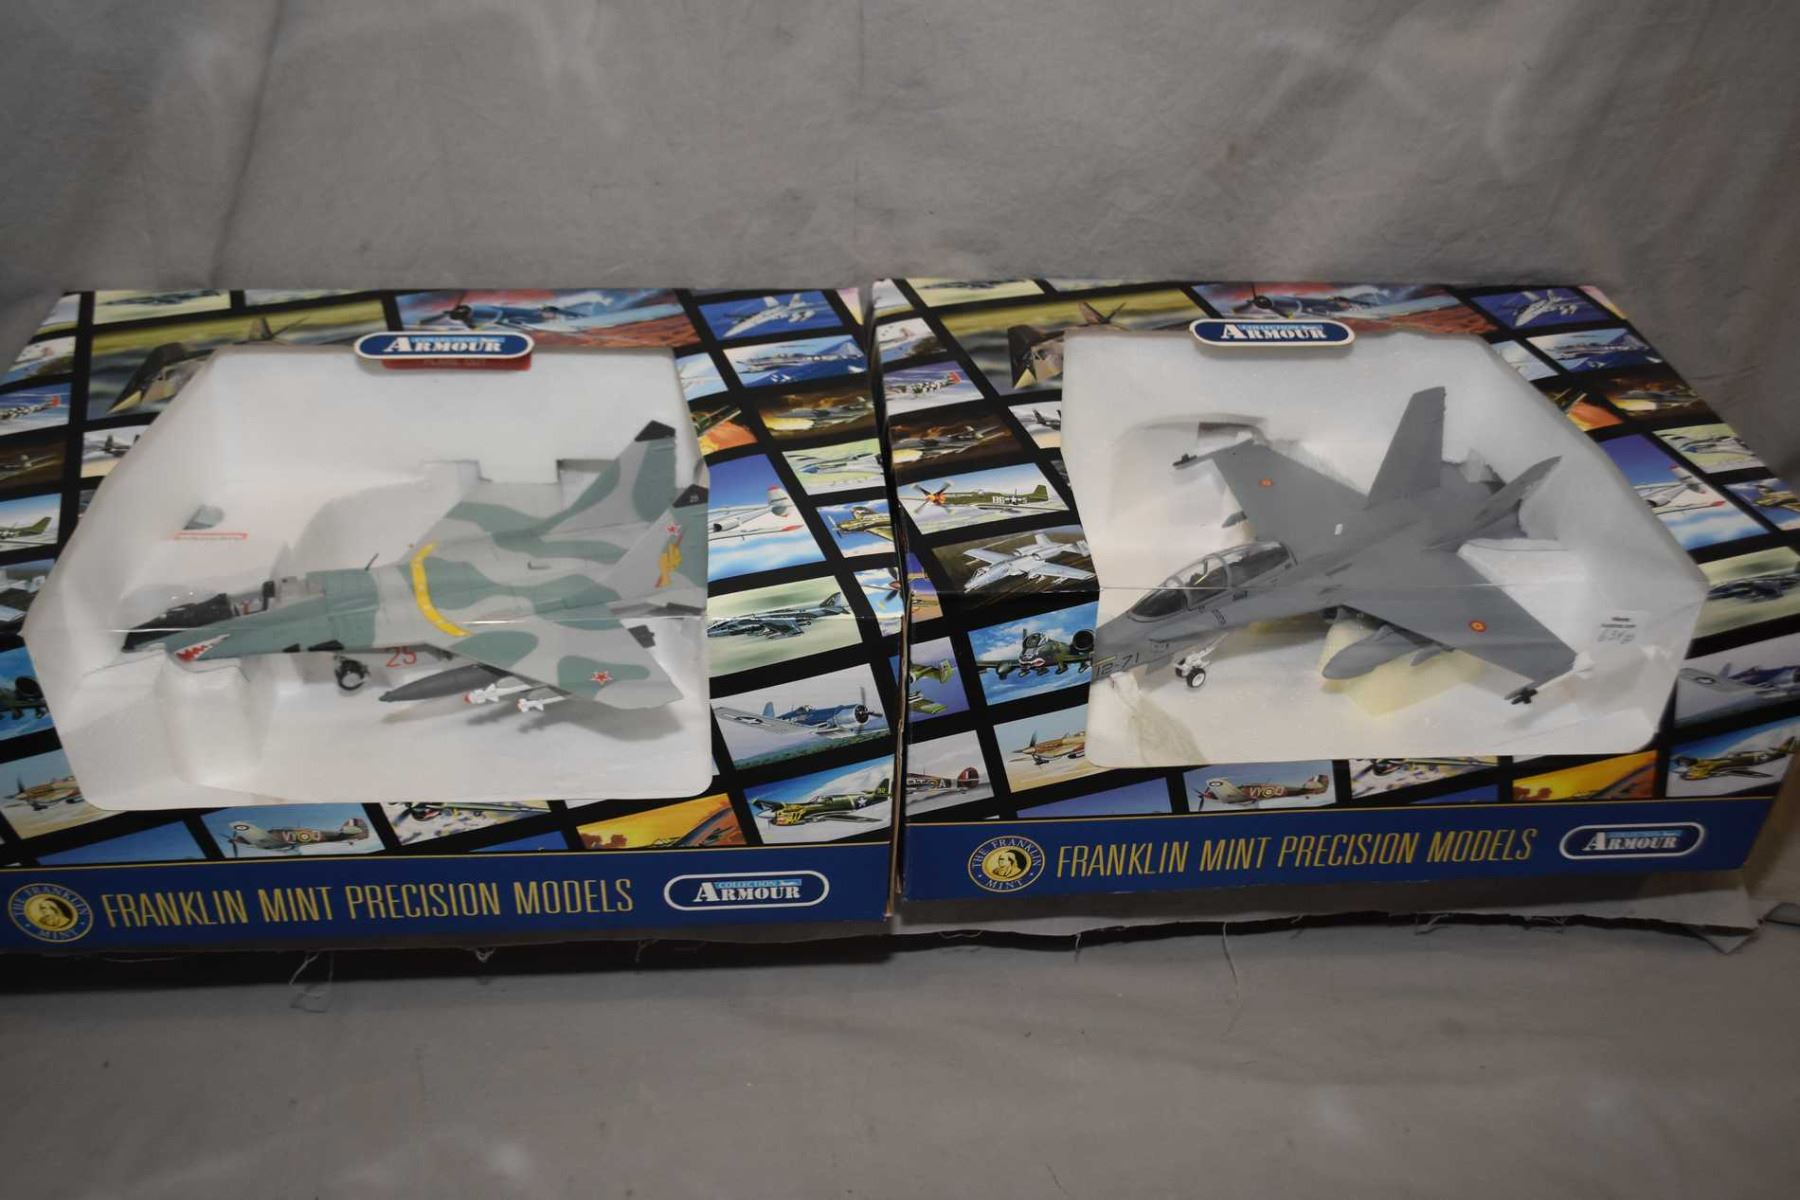 Two Franklin Mint 1:48th scale, die cast fighter jets including